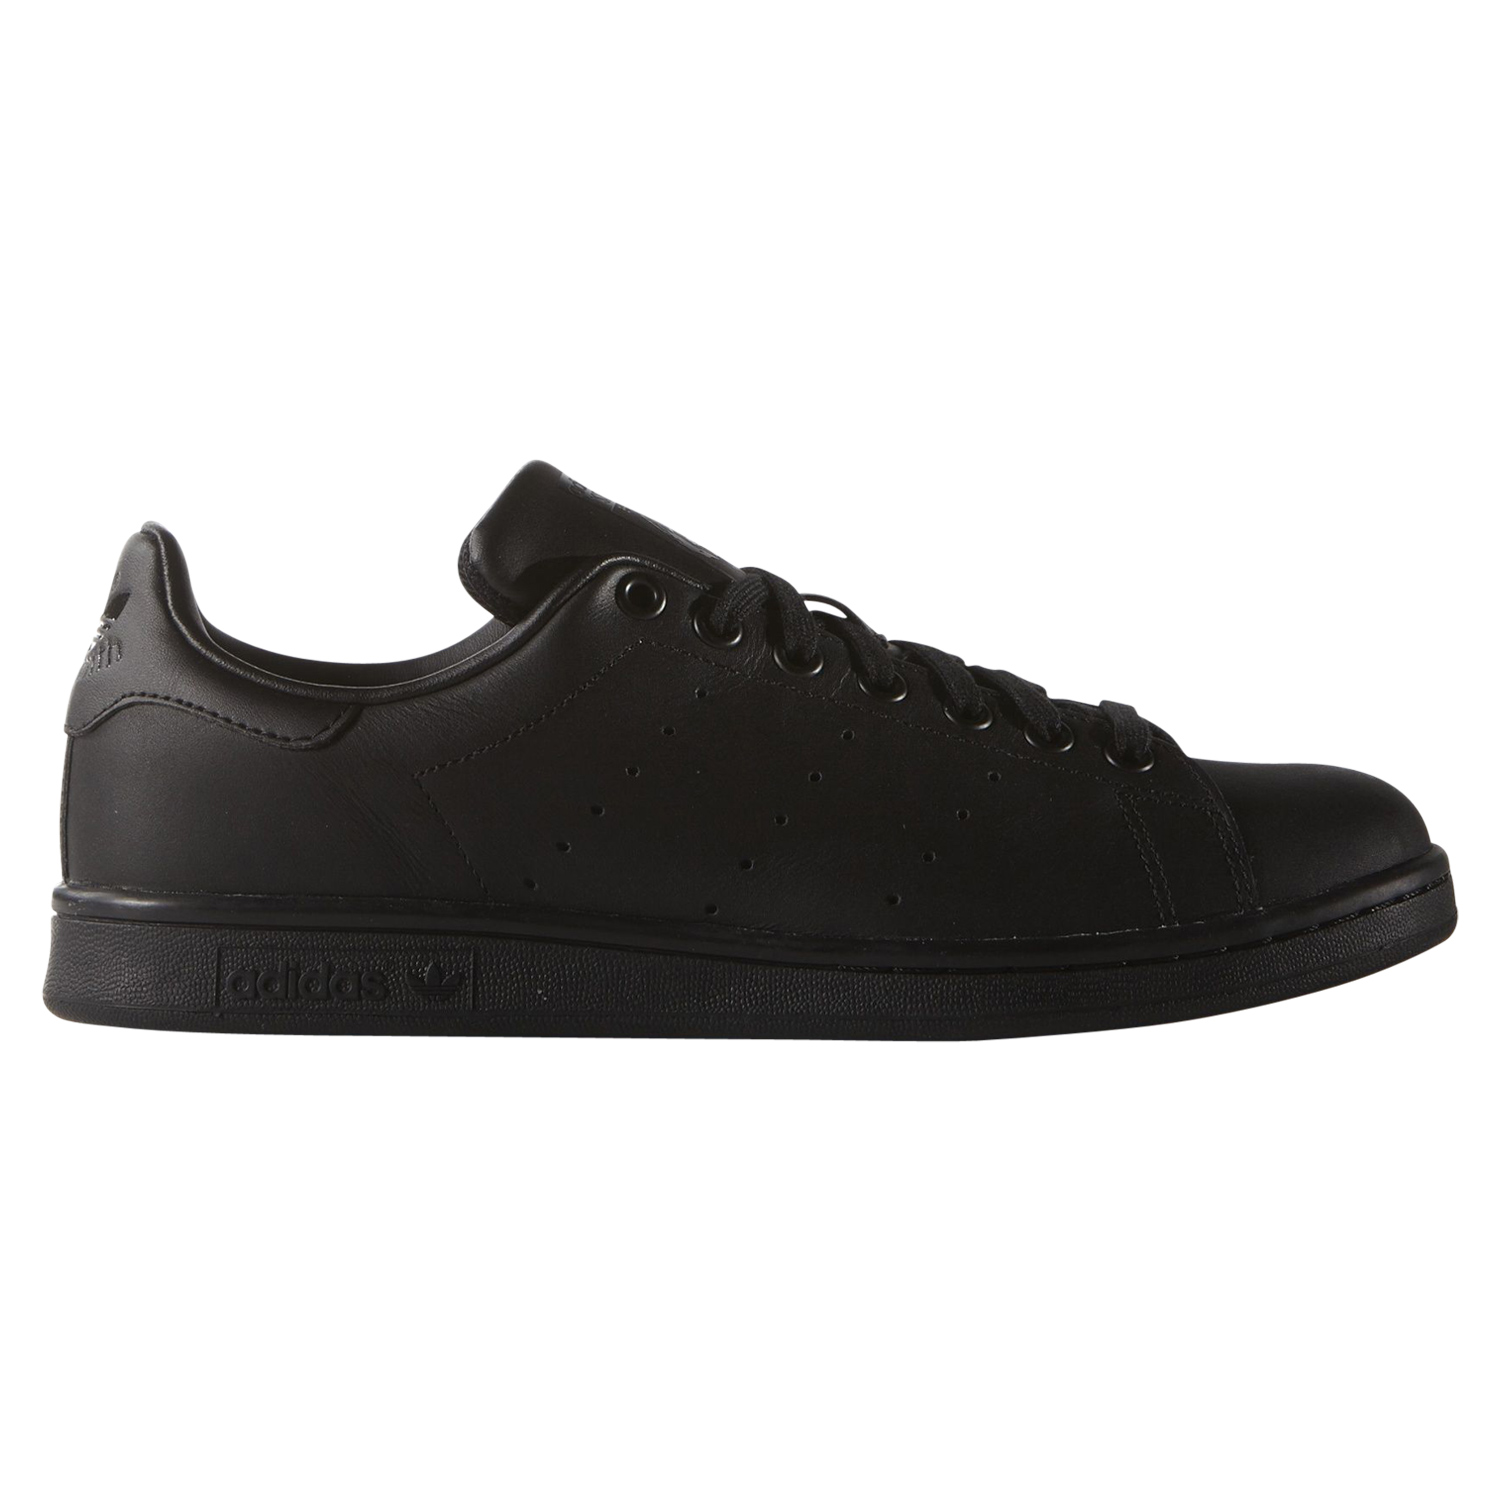 adidas originals stan smith schuhe turnschuhe sneaker. Black Bedroom Furniture Sets. Home Design Ideas